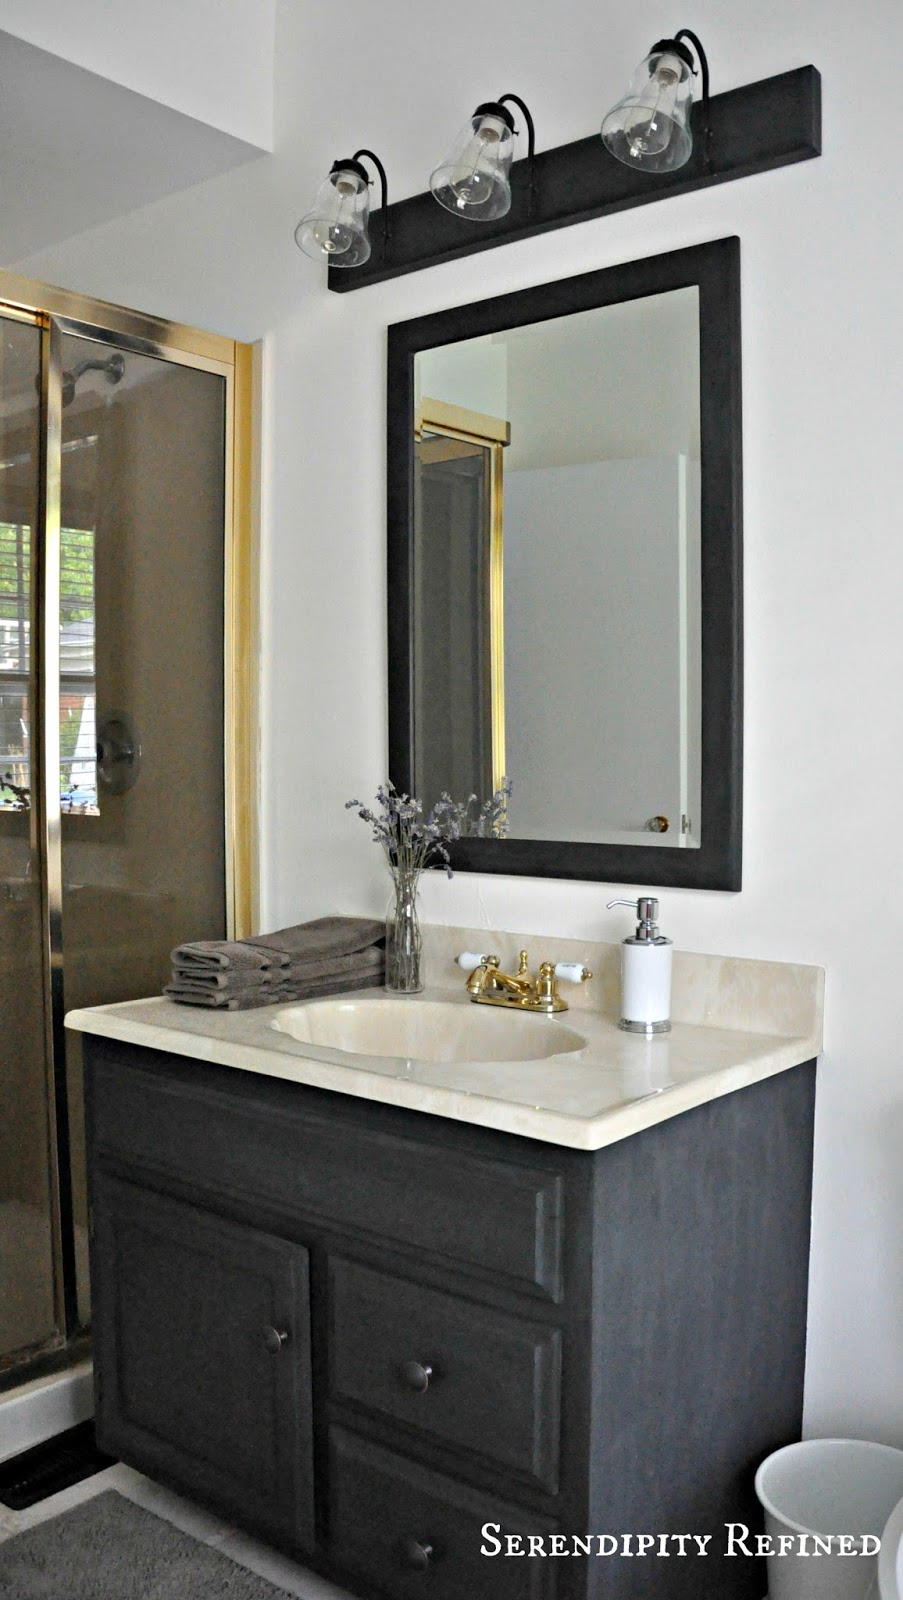 Serendipity Refined Blog How To Update Oak And Brass Bathroom Fixtures With Spray Paint Chalk